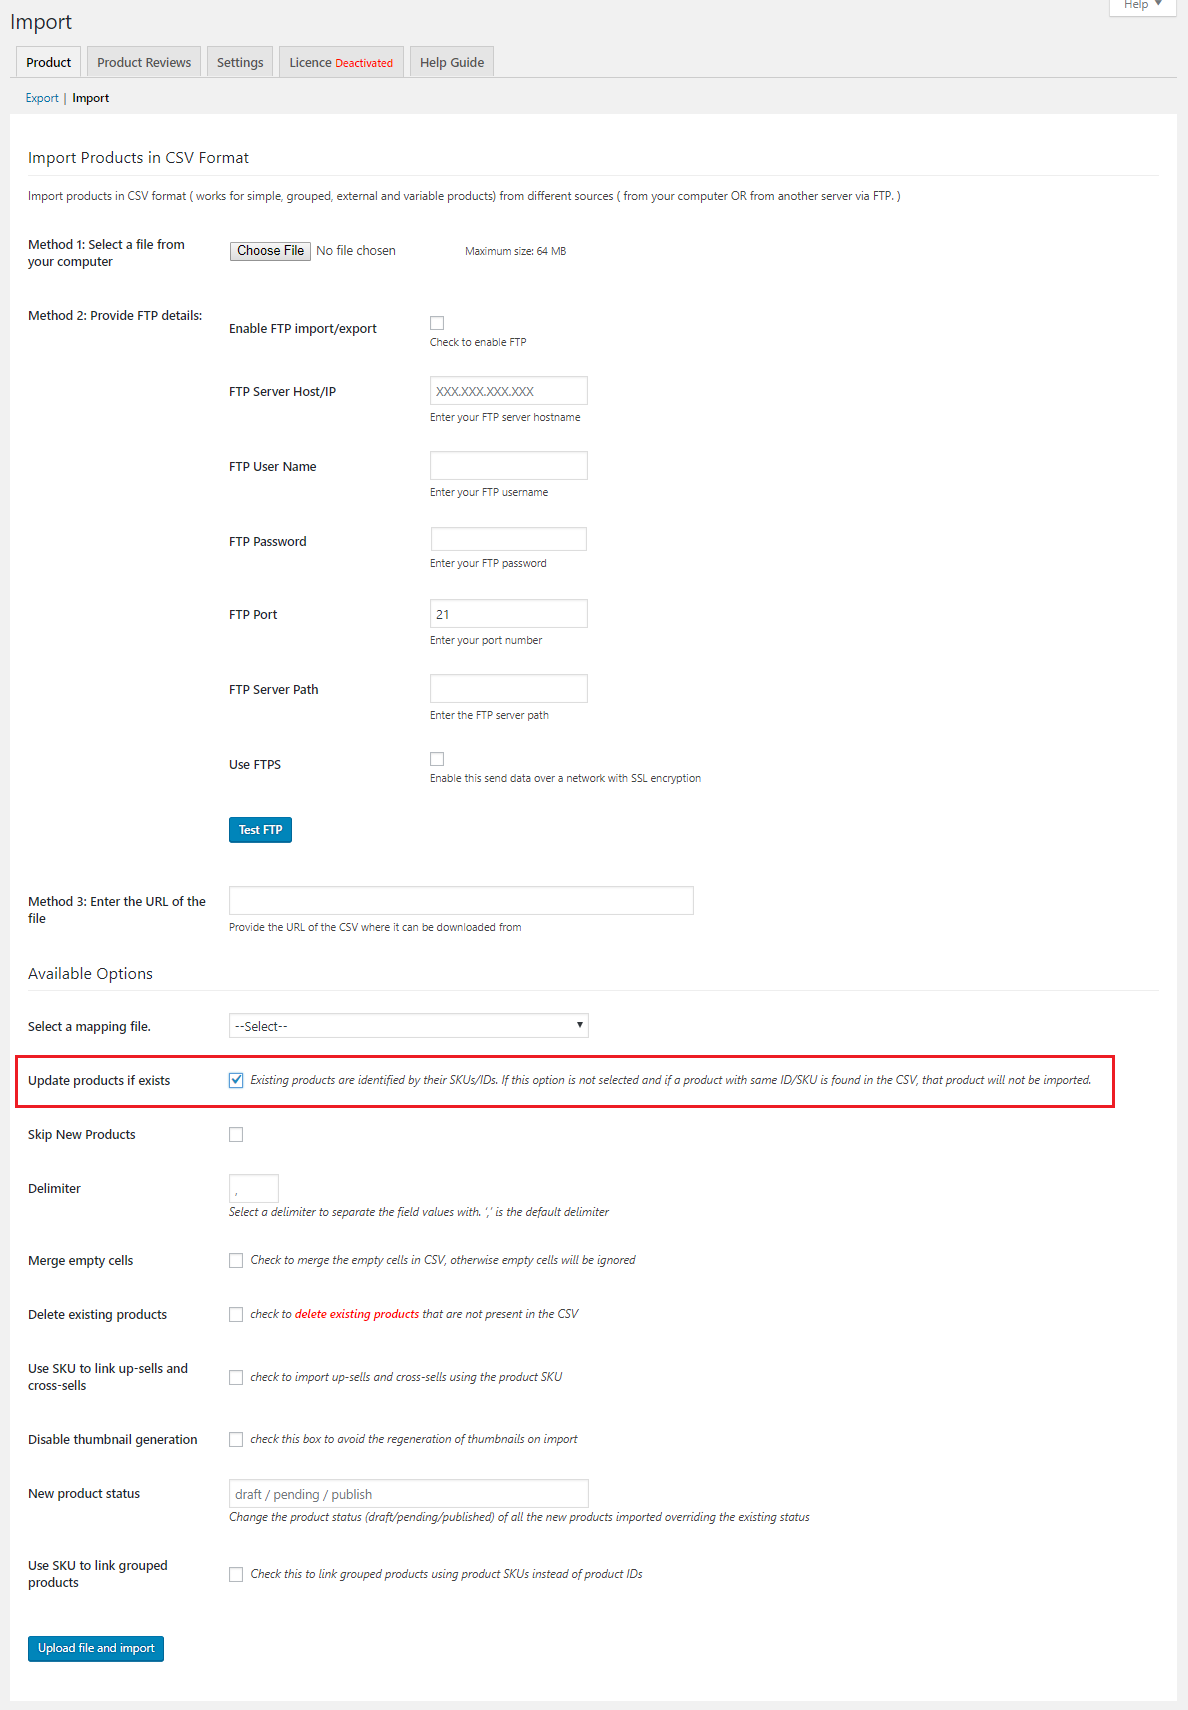 Product import with update existing products field checked